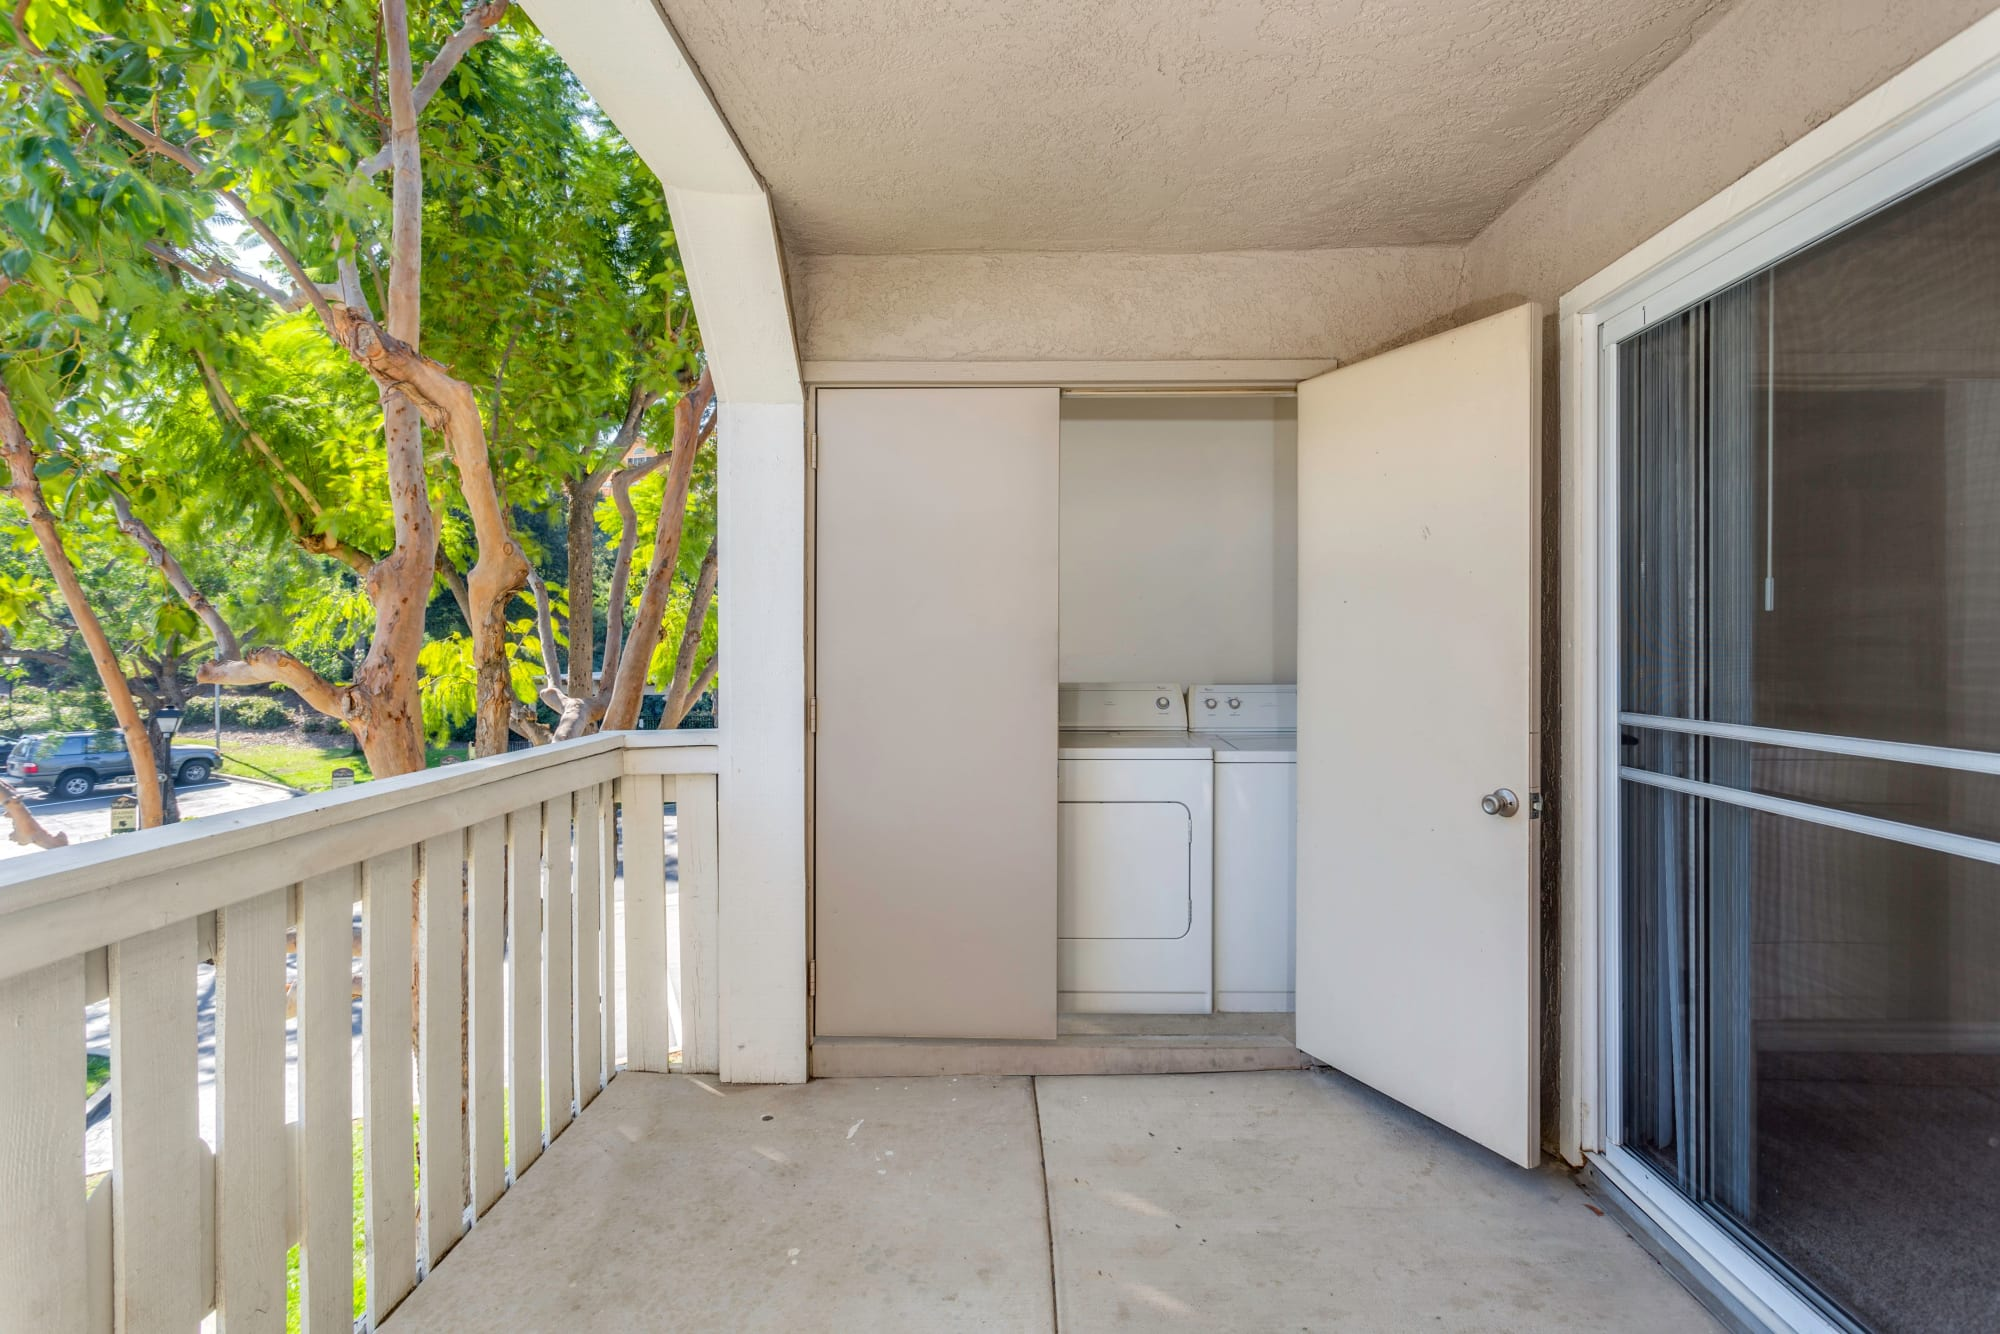 Washer and dryer at Village Oaks in Chino Hills, California